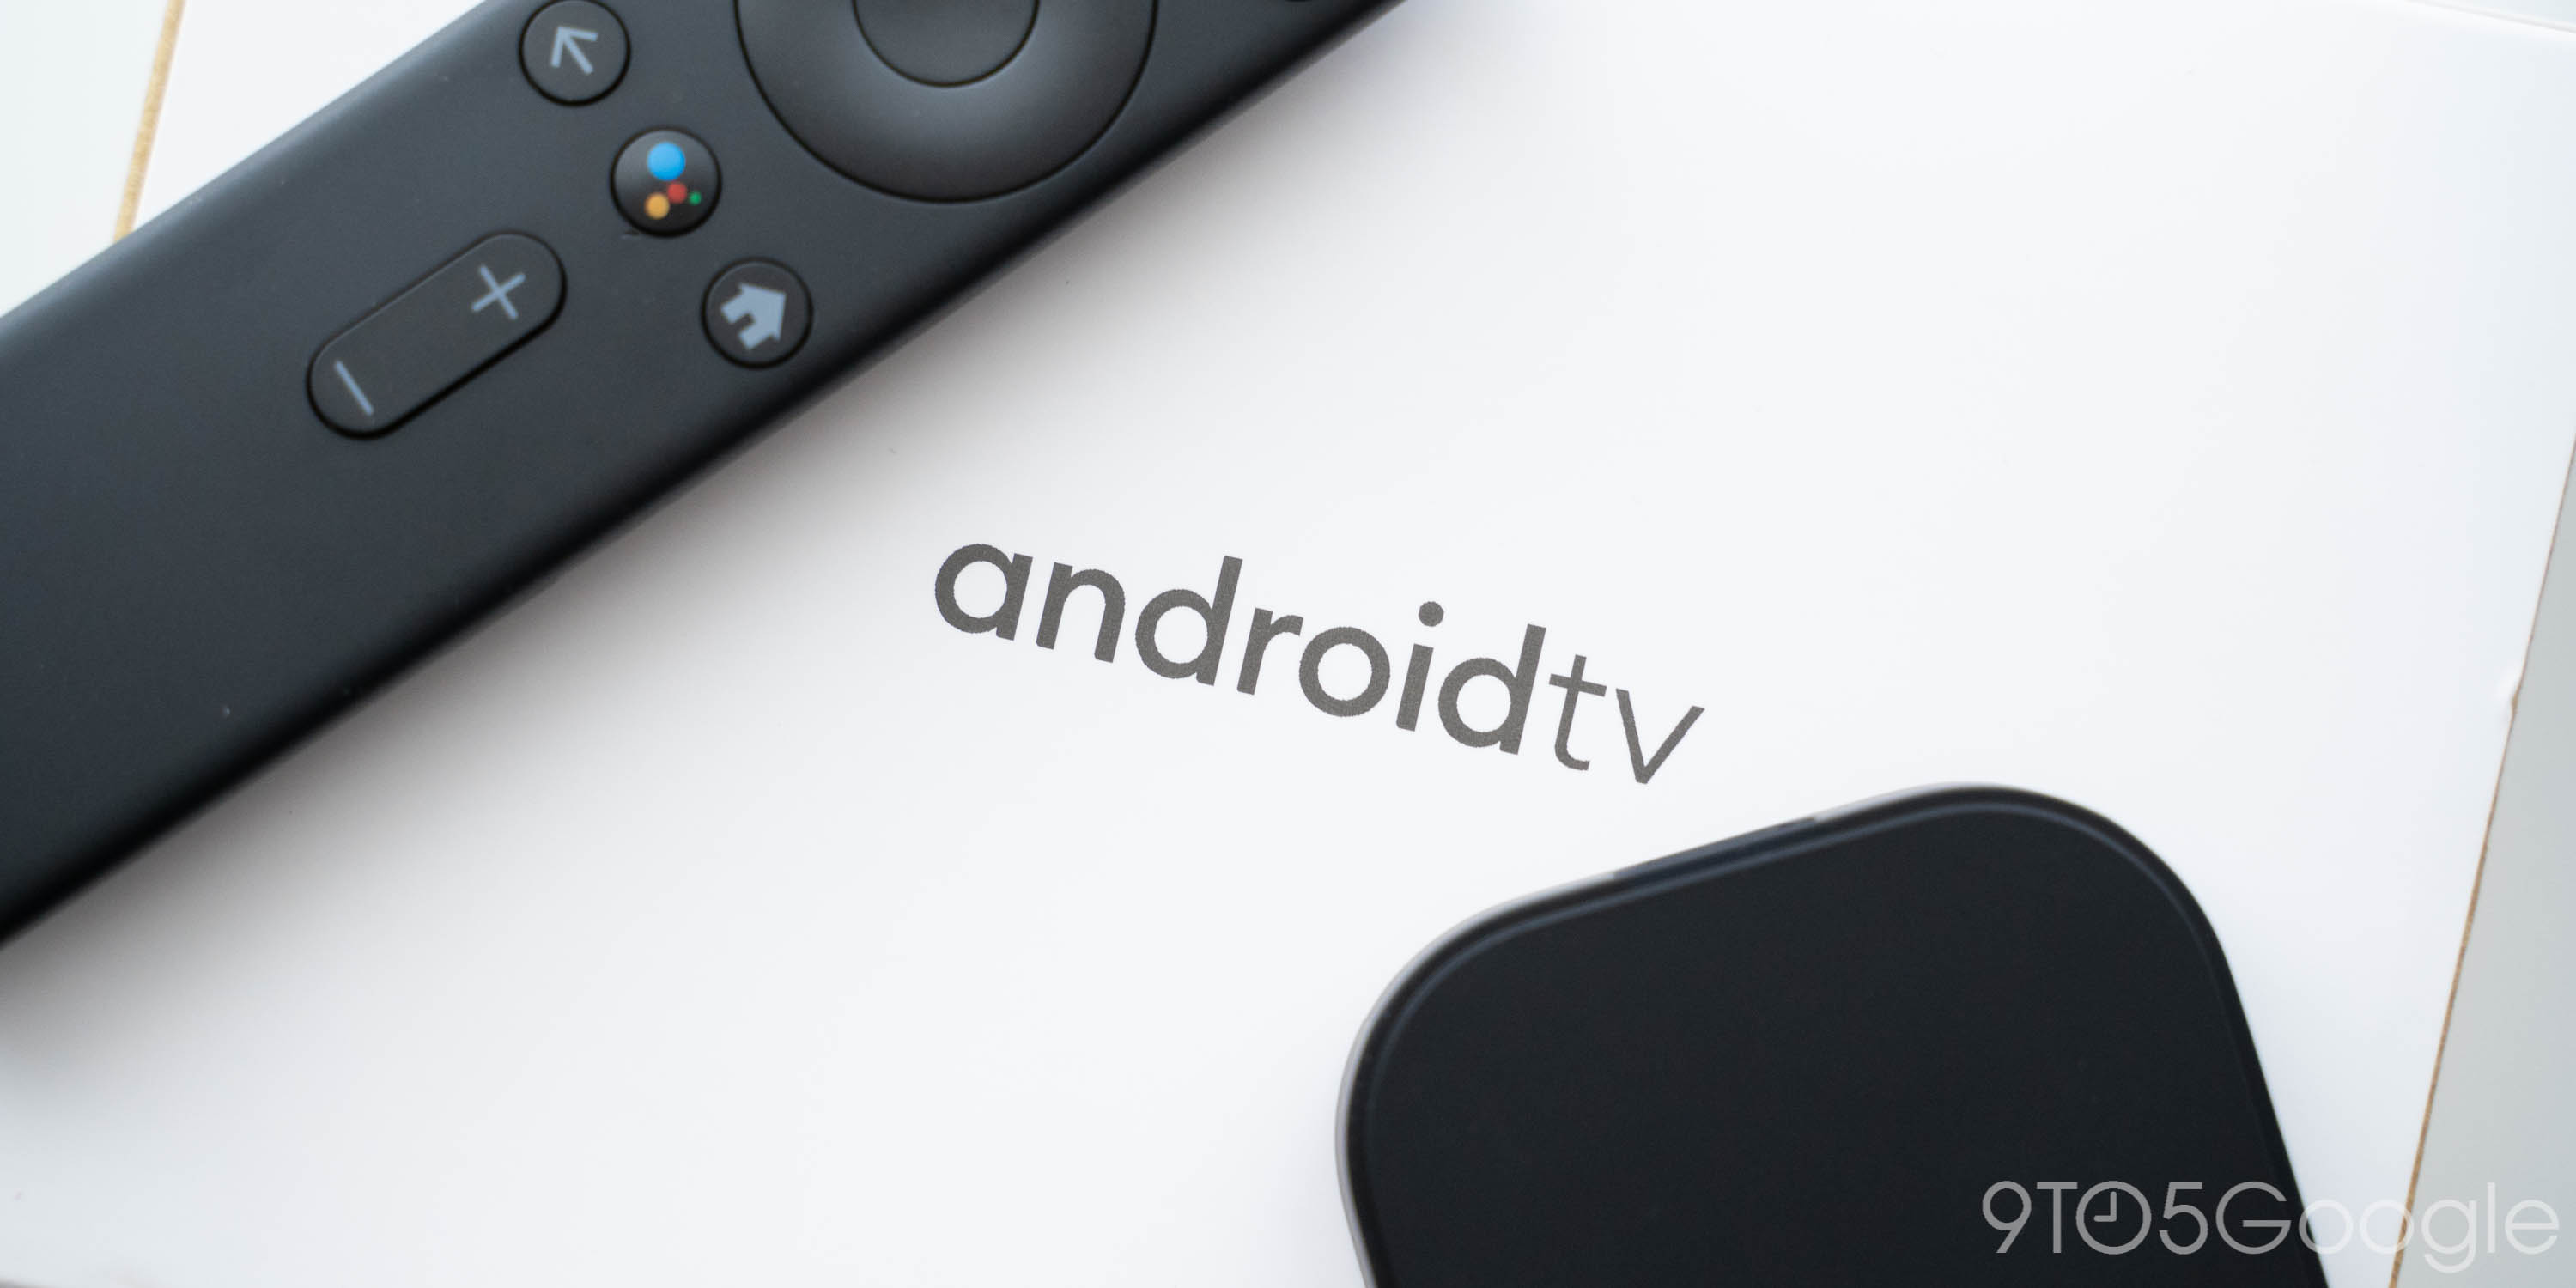 Google Adt 3 Android Tv On A Dongle You Shouldn T Buy 9to5google